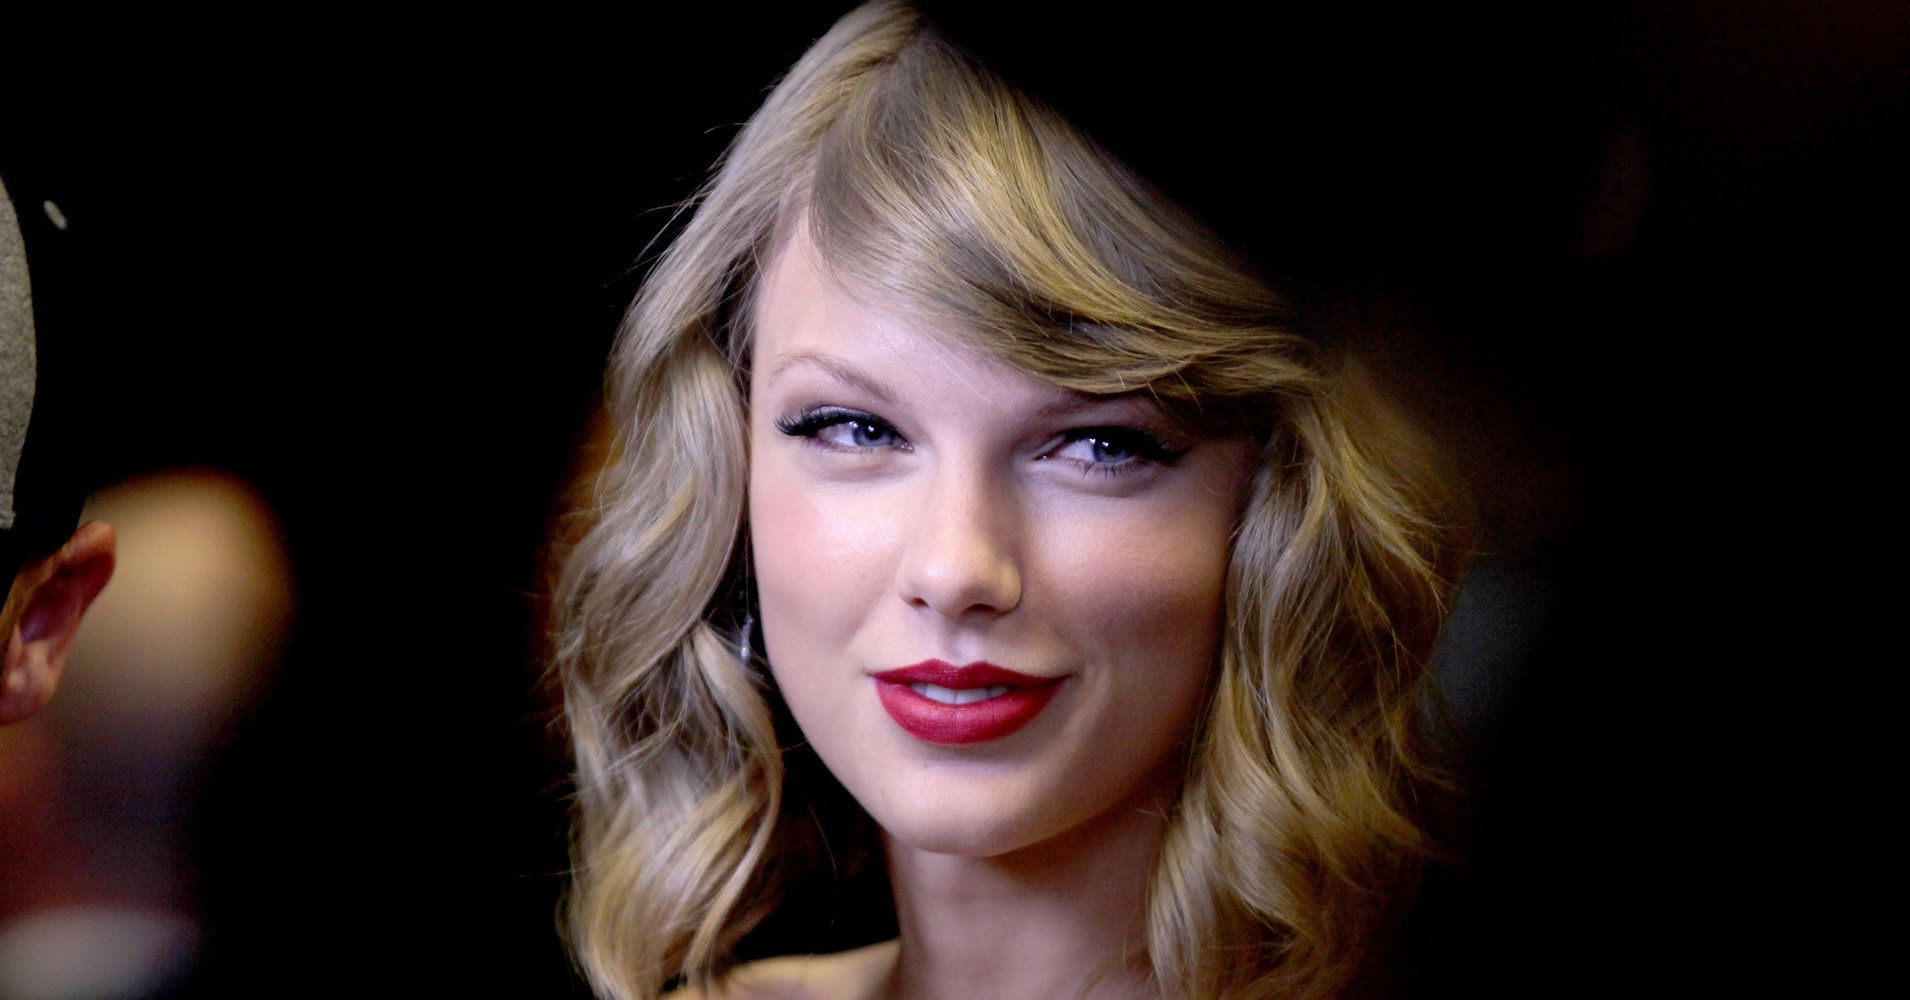 Taylor Swifts Lawyers Set To Make Opening Statement In Groping Trial Taylor Swift New Single Taylor Swift Beauty Hacks Video